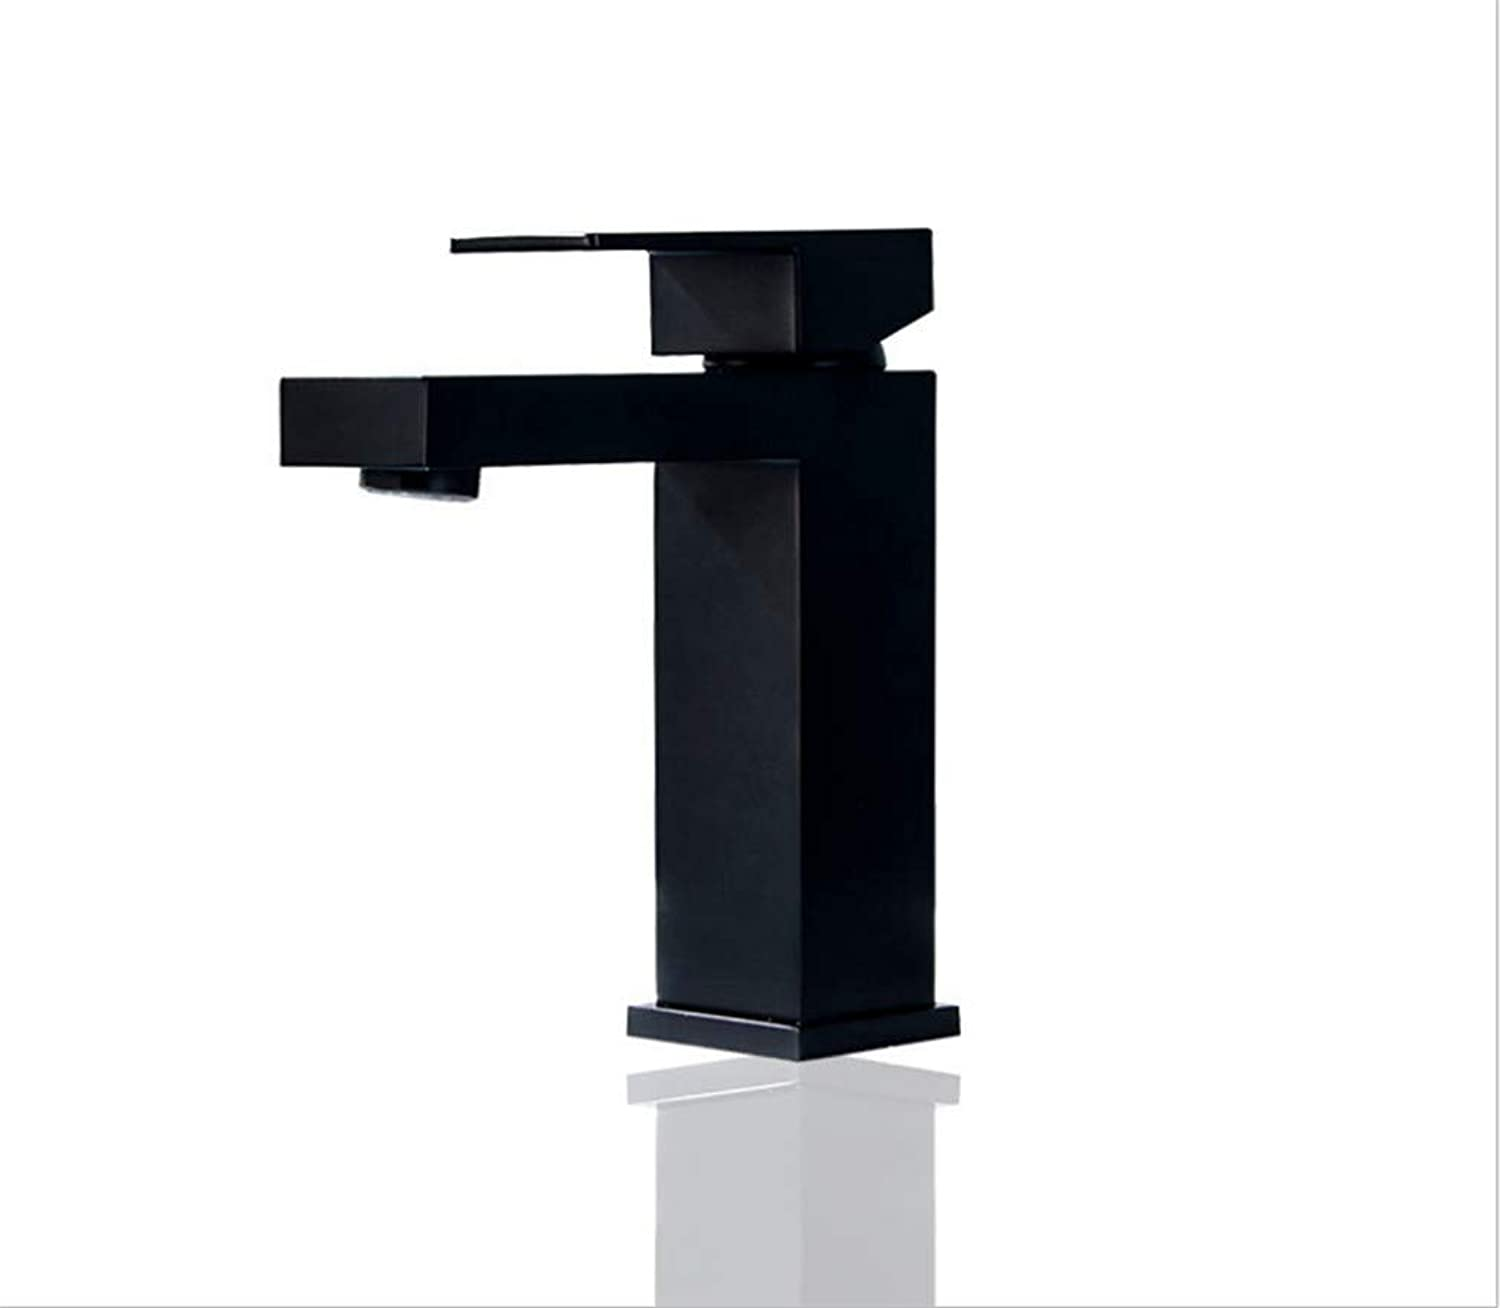 Kitchen Sink Taps Bathroom Taps Copper Hot and Cold Basin Faucet Square Hotel Table Basin Washbasin Faucet